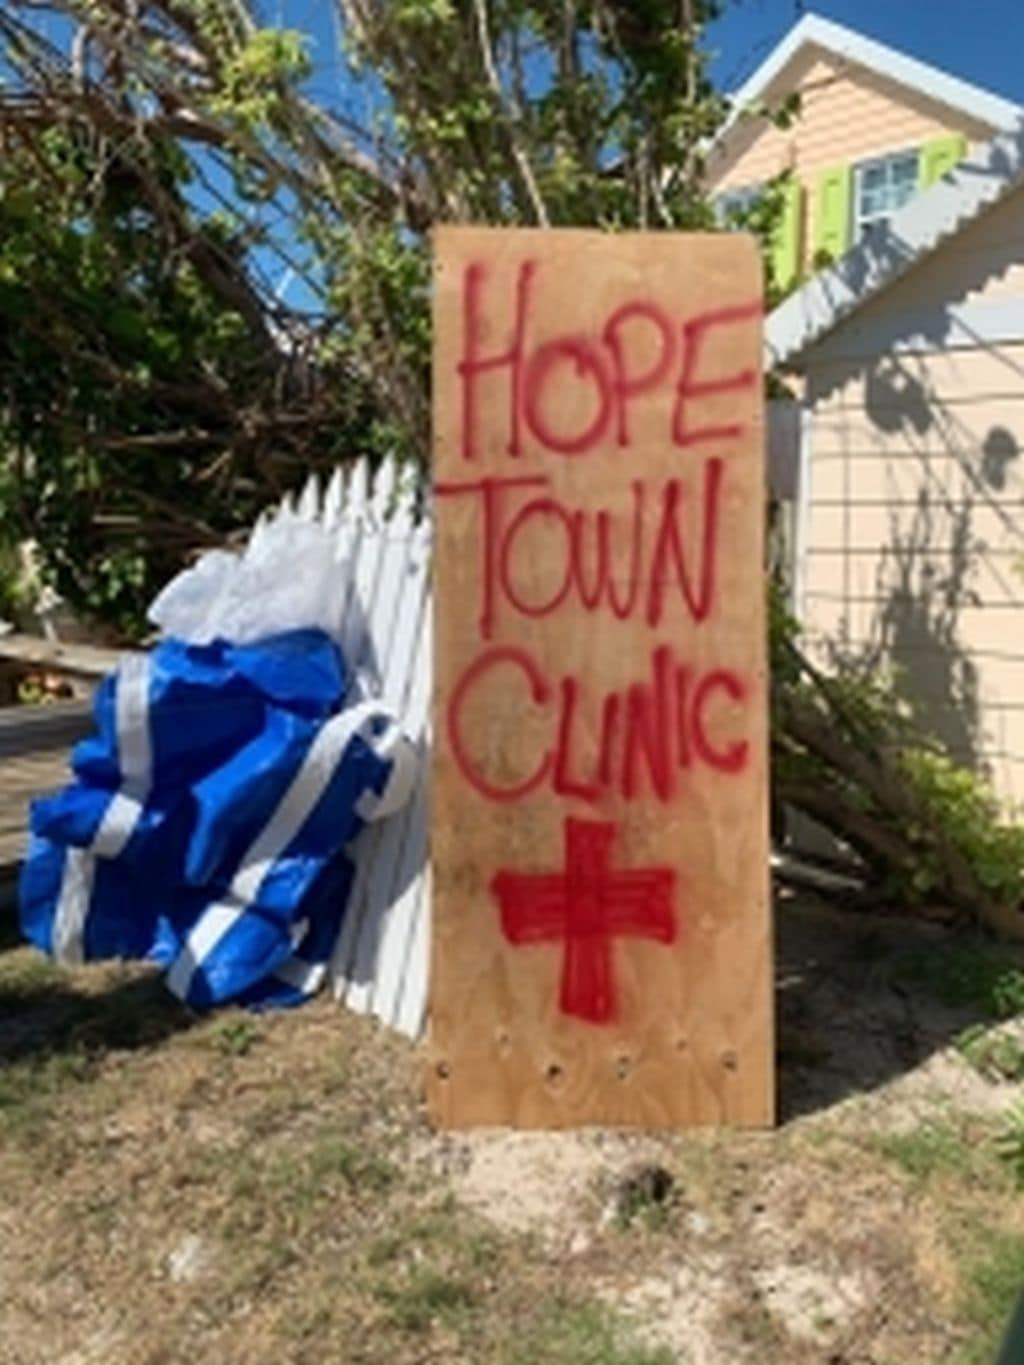 Temporary Hope Town Clinic